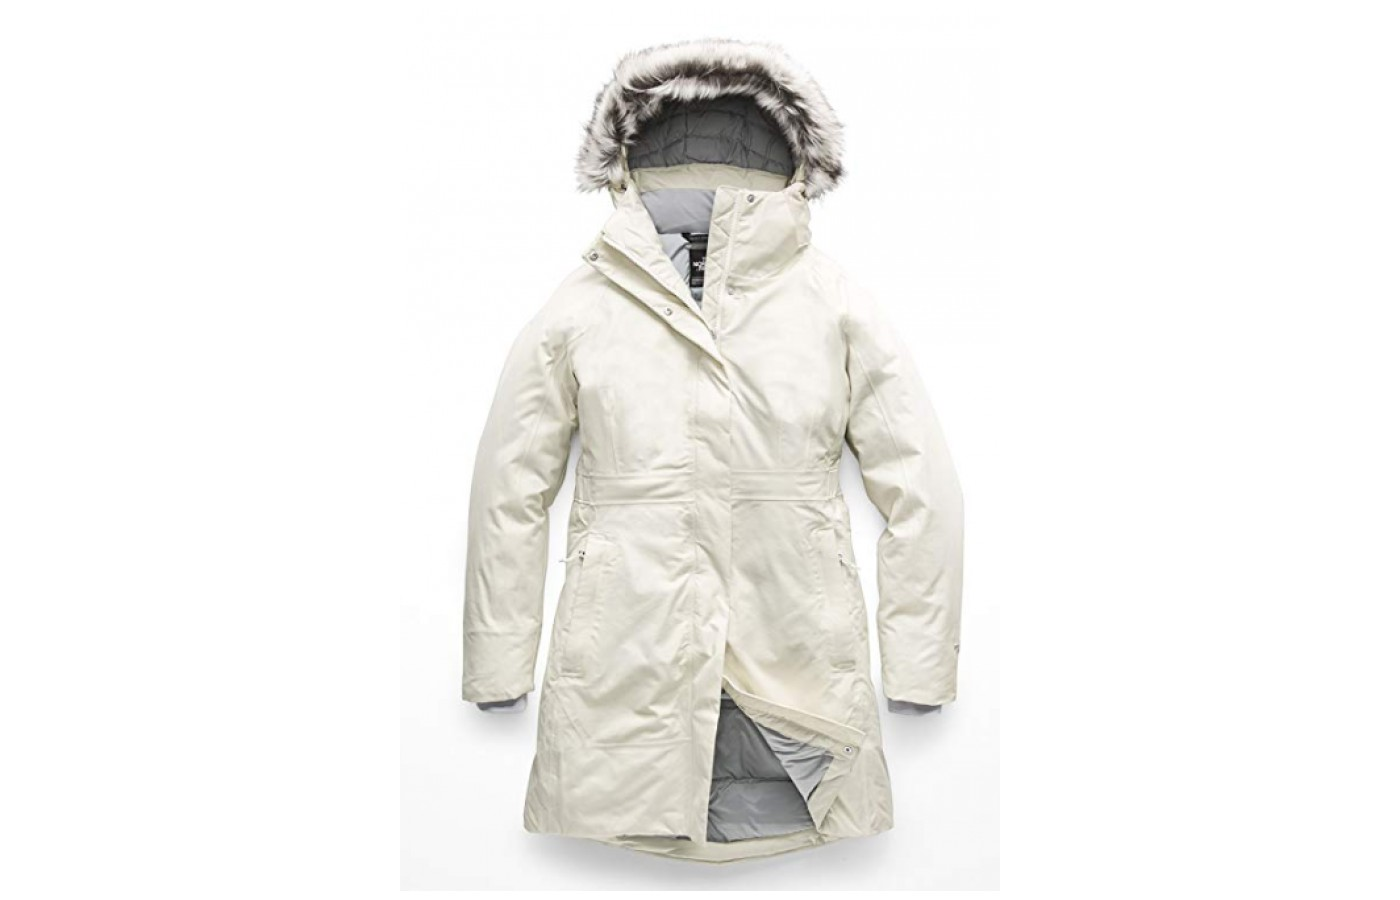 The Parka offers double protection via a flap that covers the inside zipper.